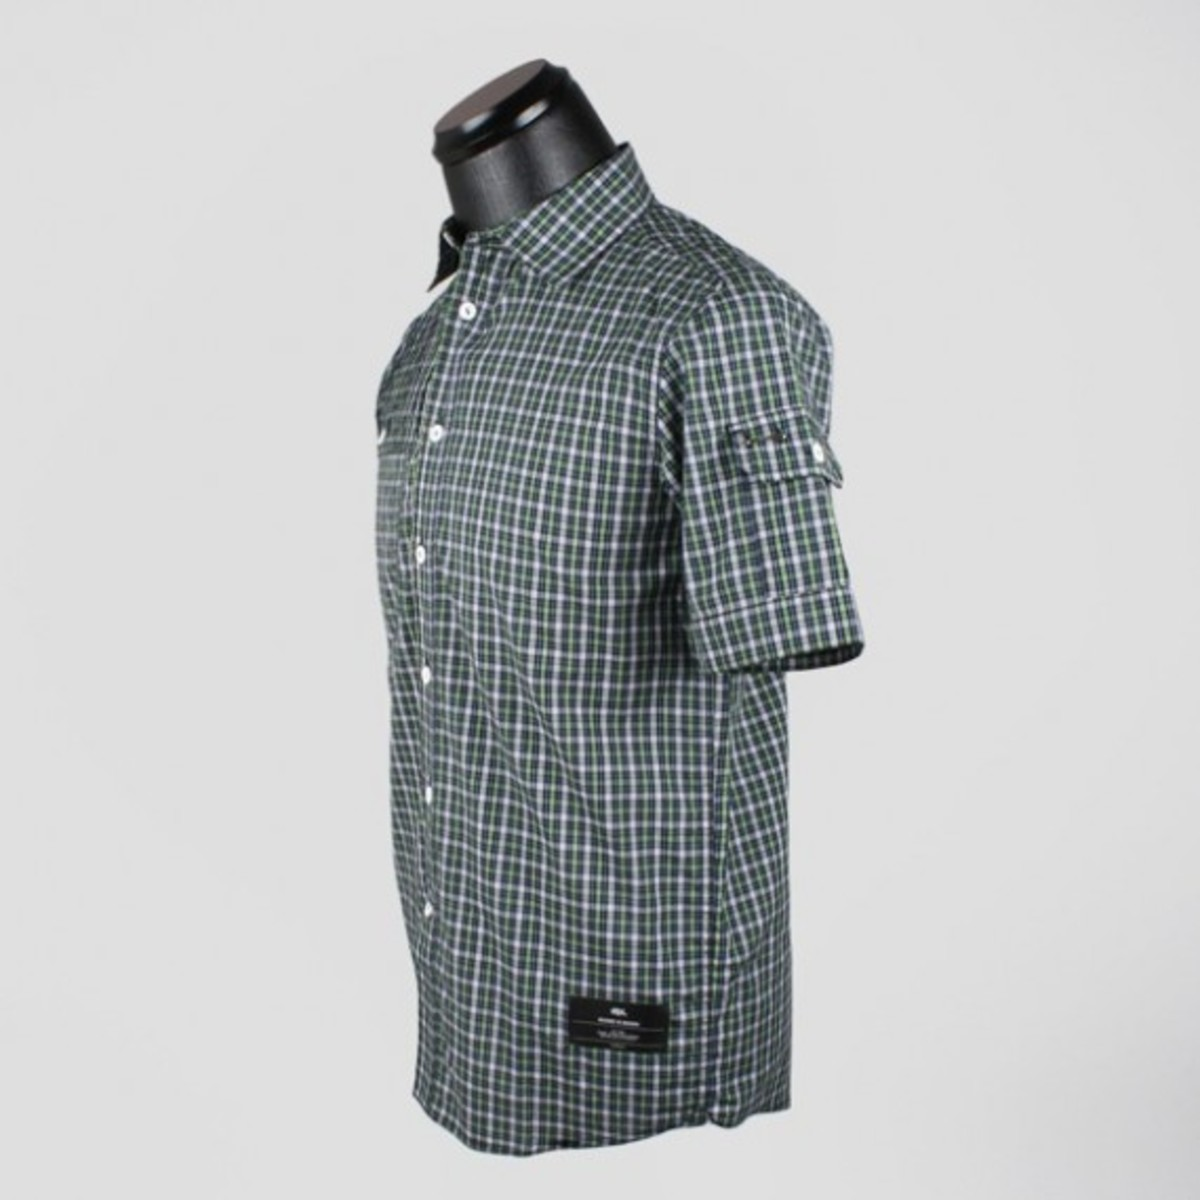 STPL-West-Short-Sleeve-Button-Shirt-SP11_2